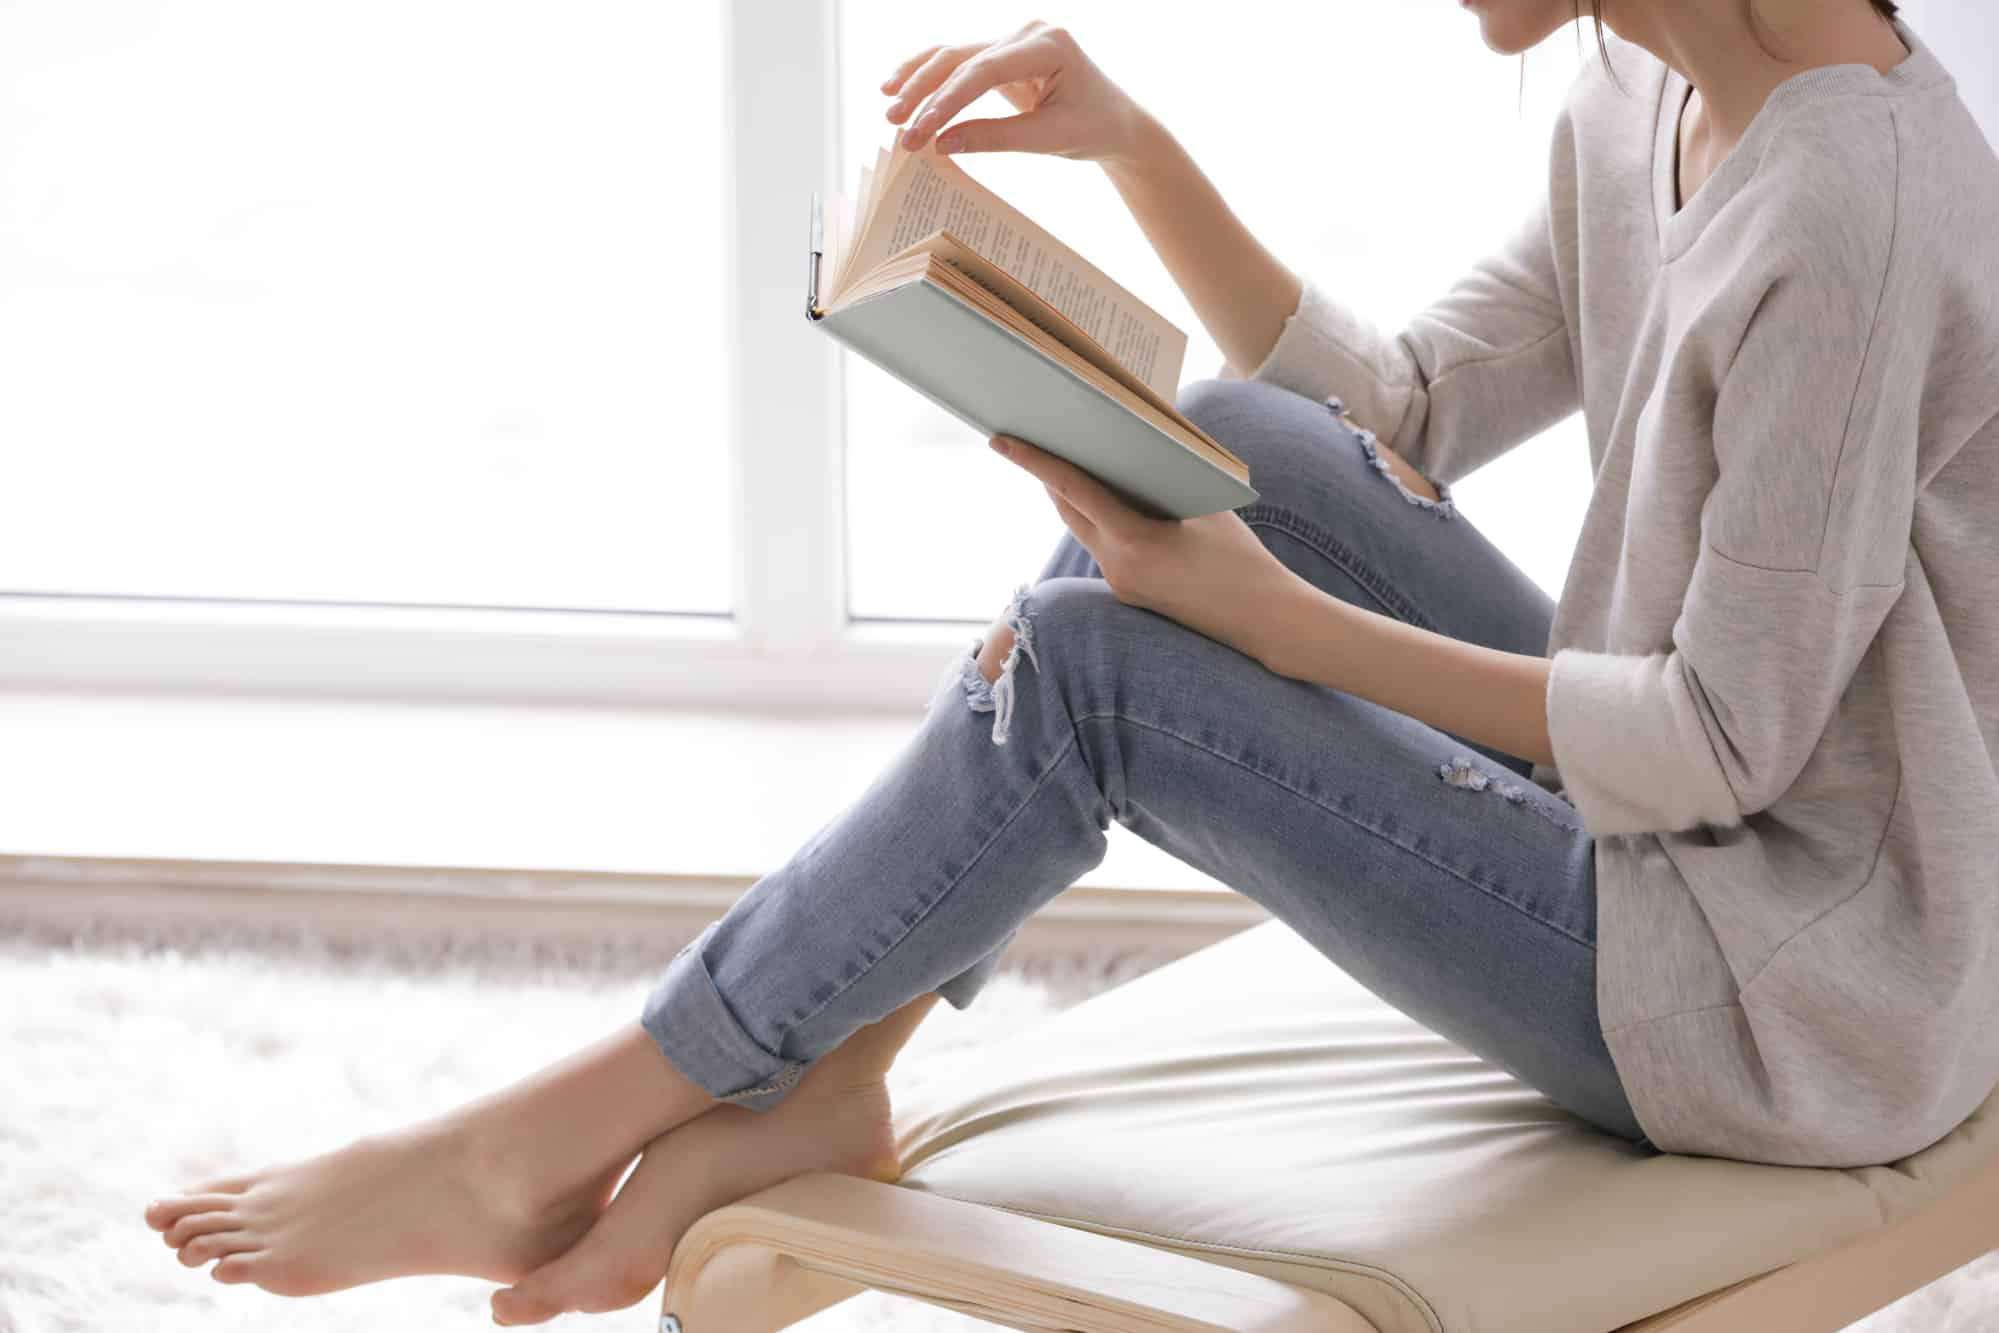 Beautiful young woman reading near window at home and meditating on God's Word